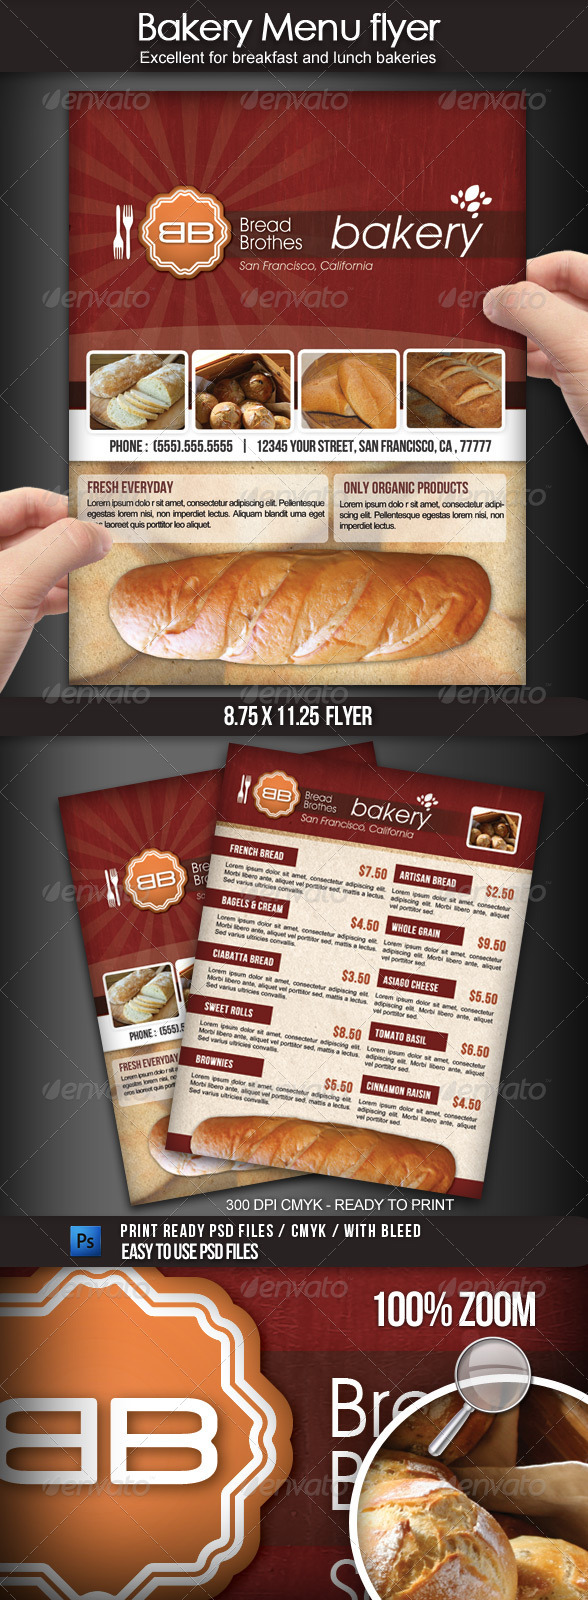 Bakery Menu Flyer - Flyers Print Templates